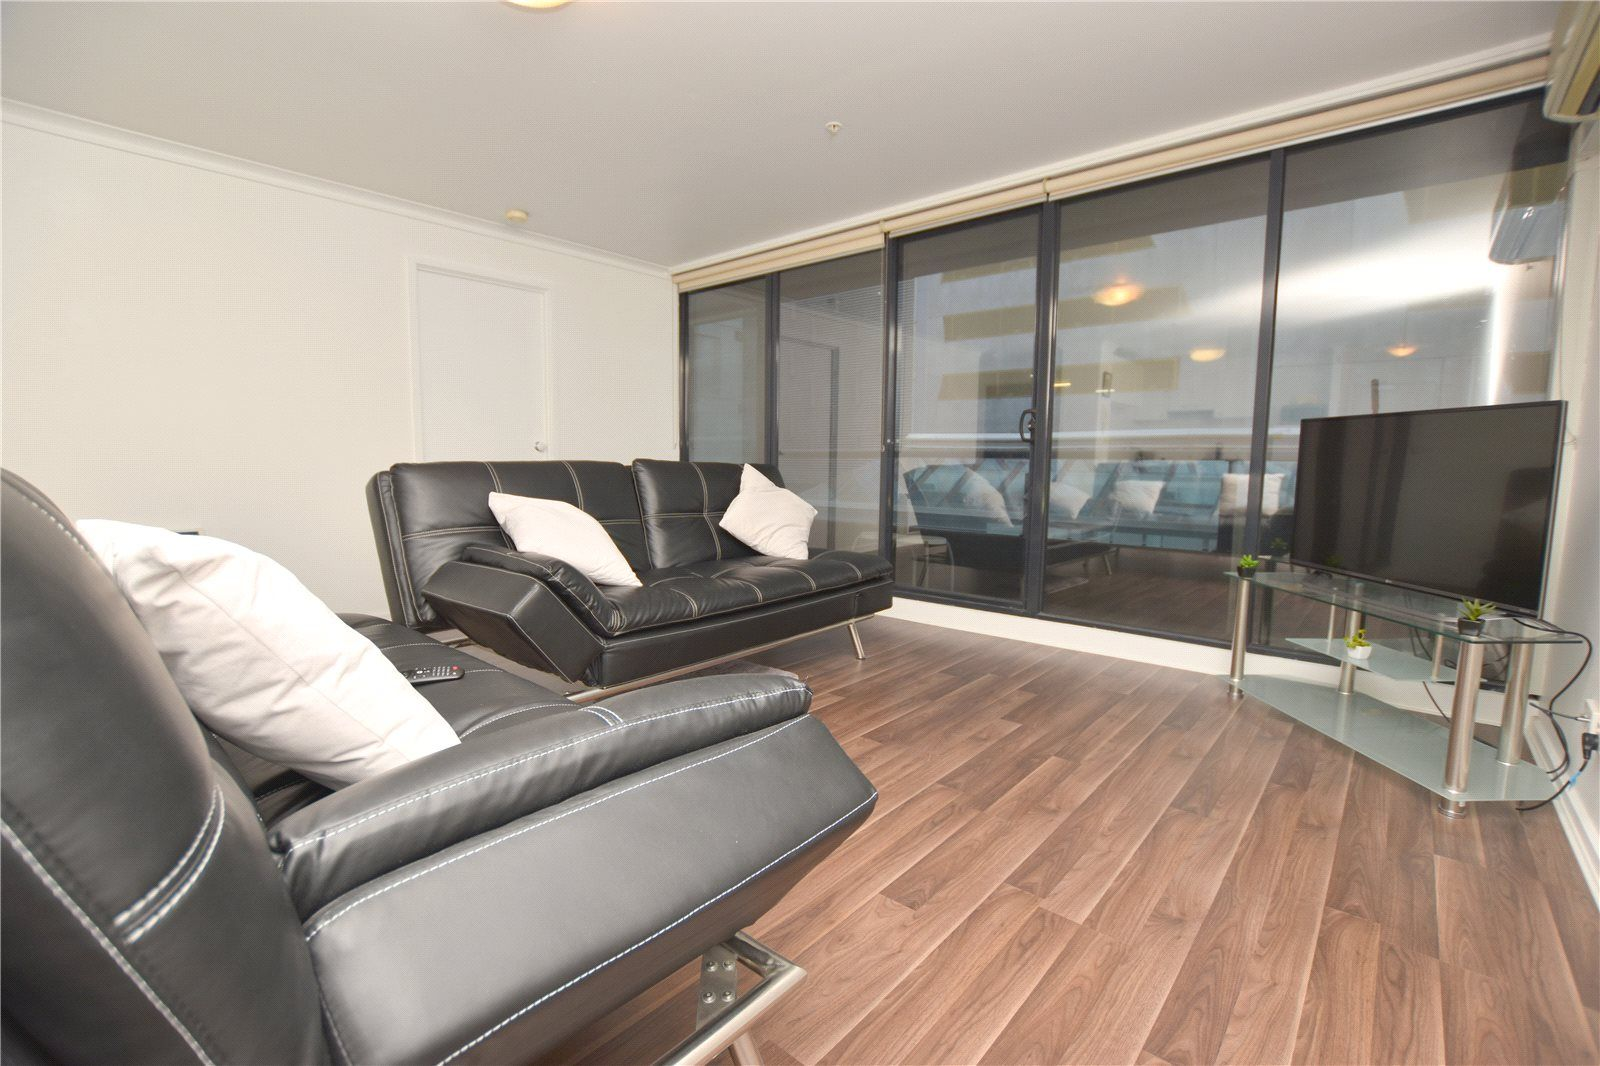 Yarra Condos: Three Bedroom Apartment with Floorboards Throughout!